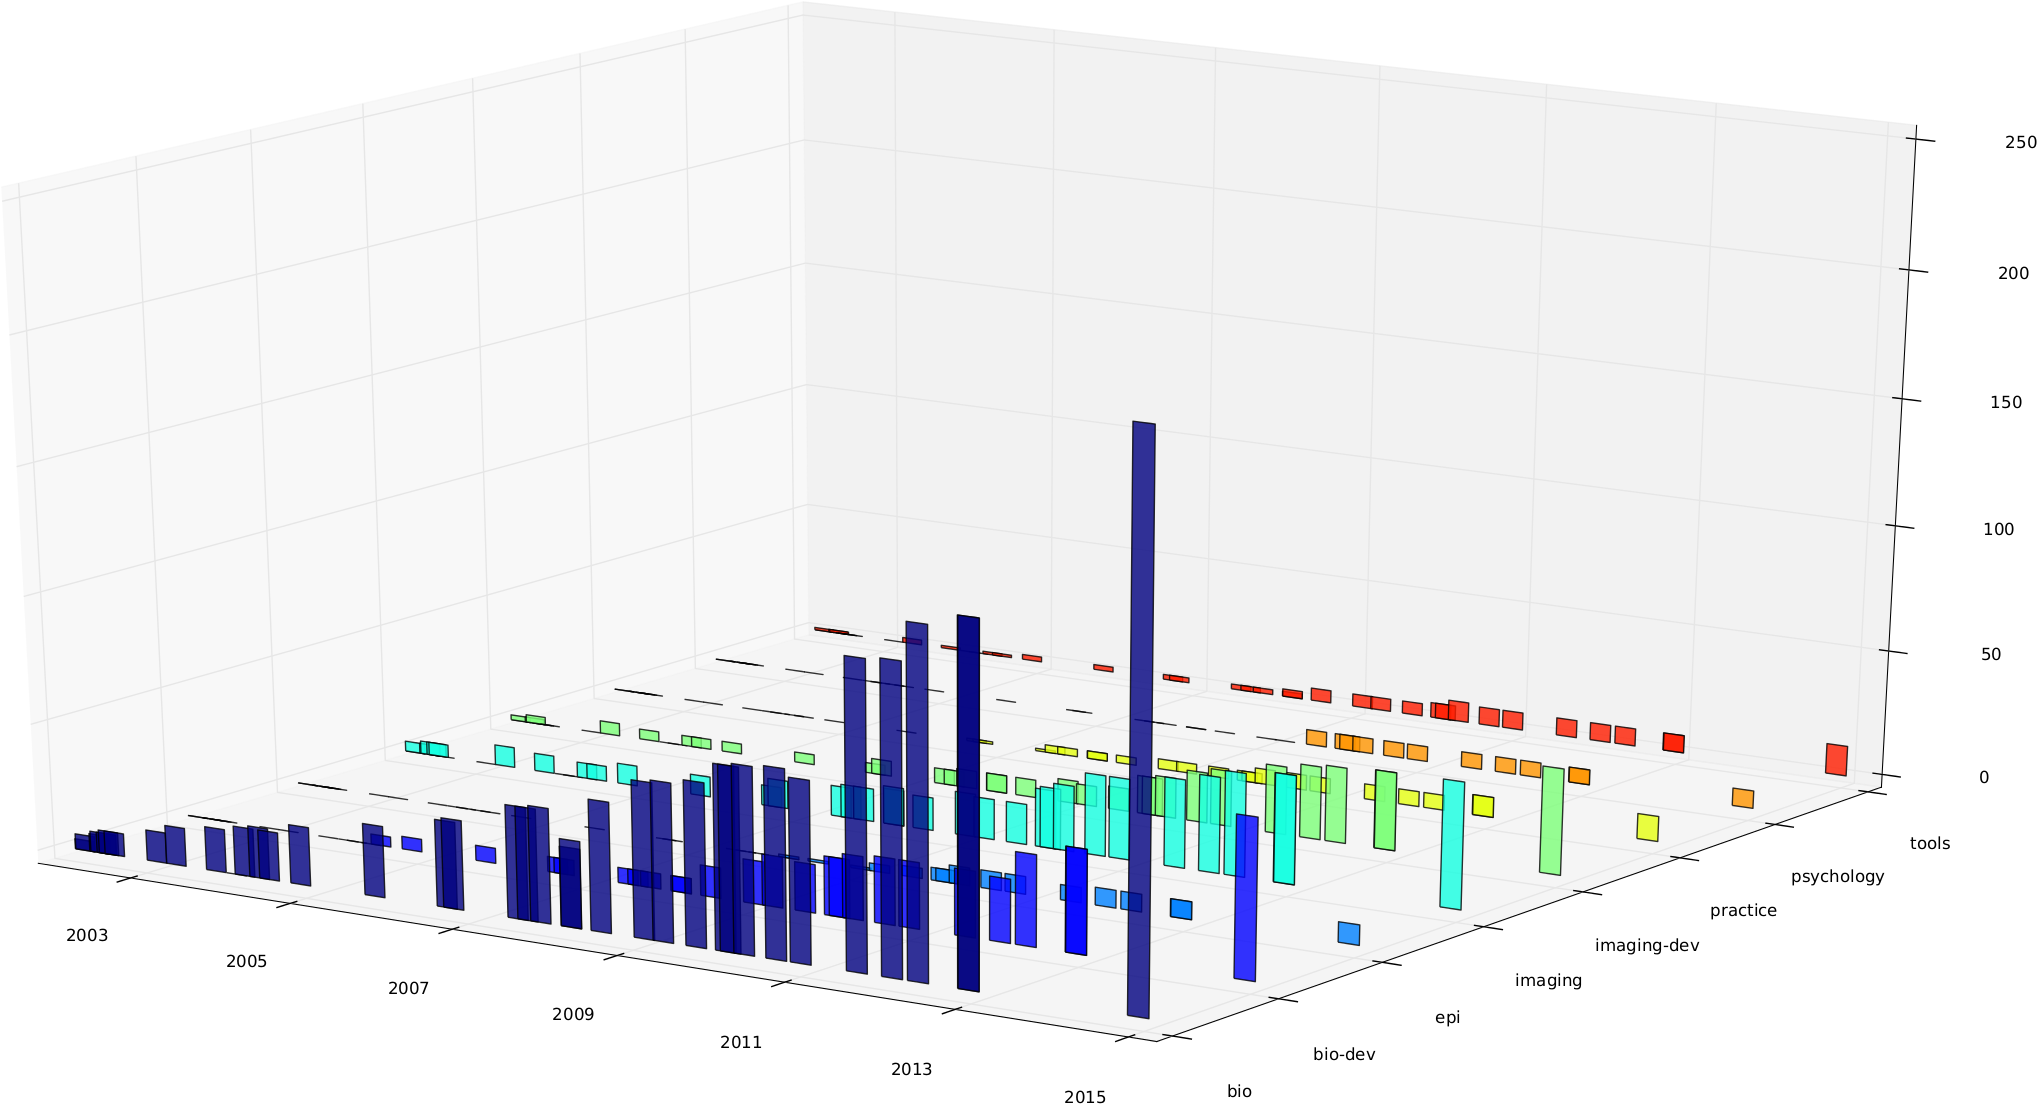 3D Bar chart of dependencies of selected metapackages over different versions in time